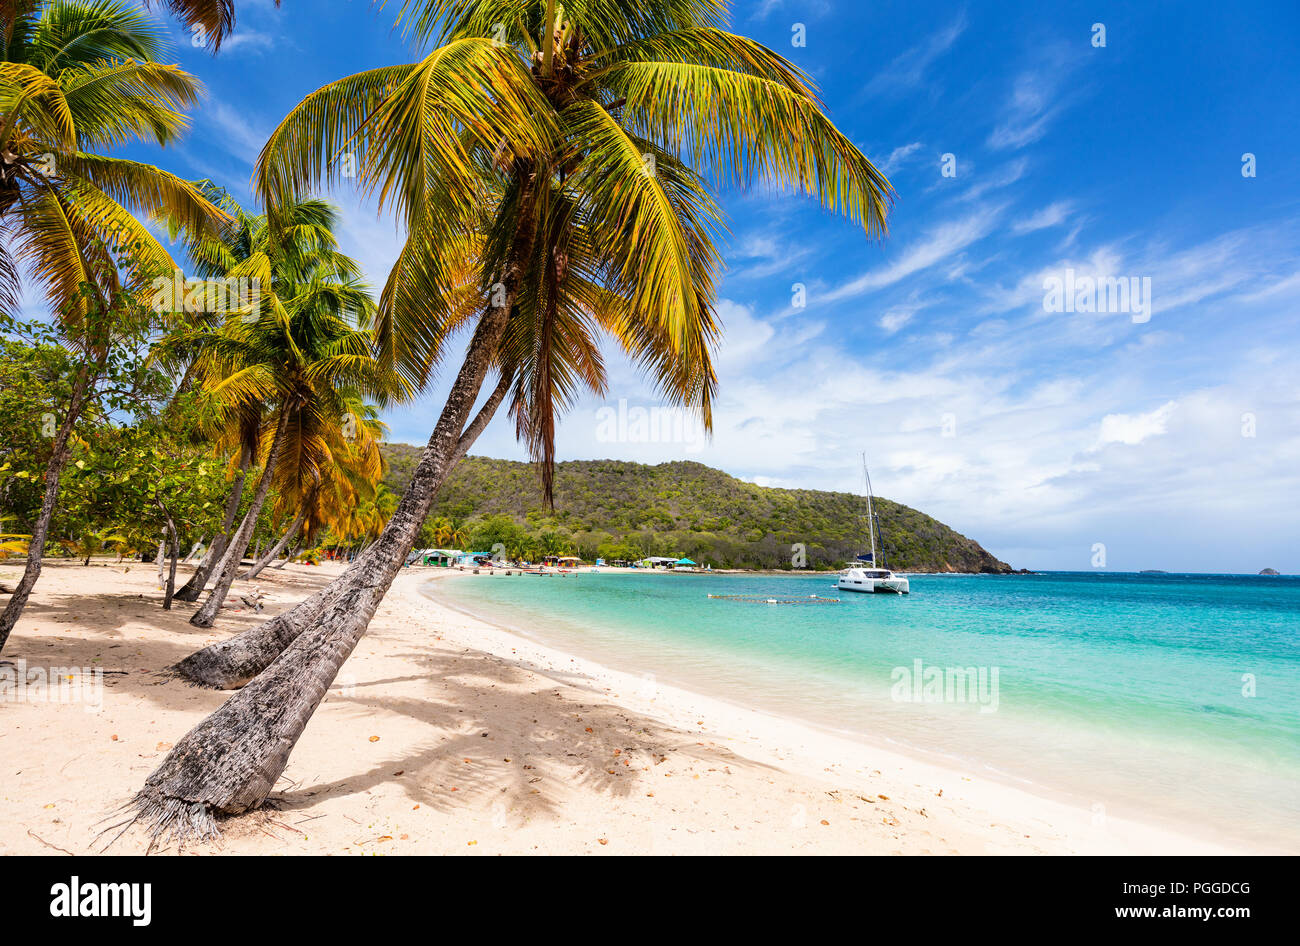 Idyllic tropical beach with white sand, palm trees and turquoise Caribbean sea water on Mayreau island in St Vincent and the Grenadines - Stock Image